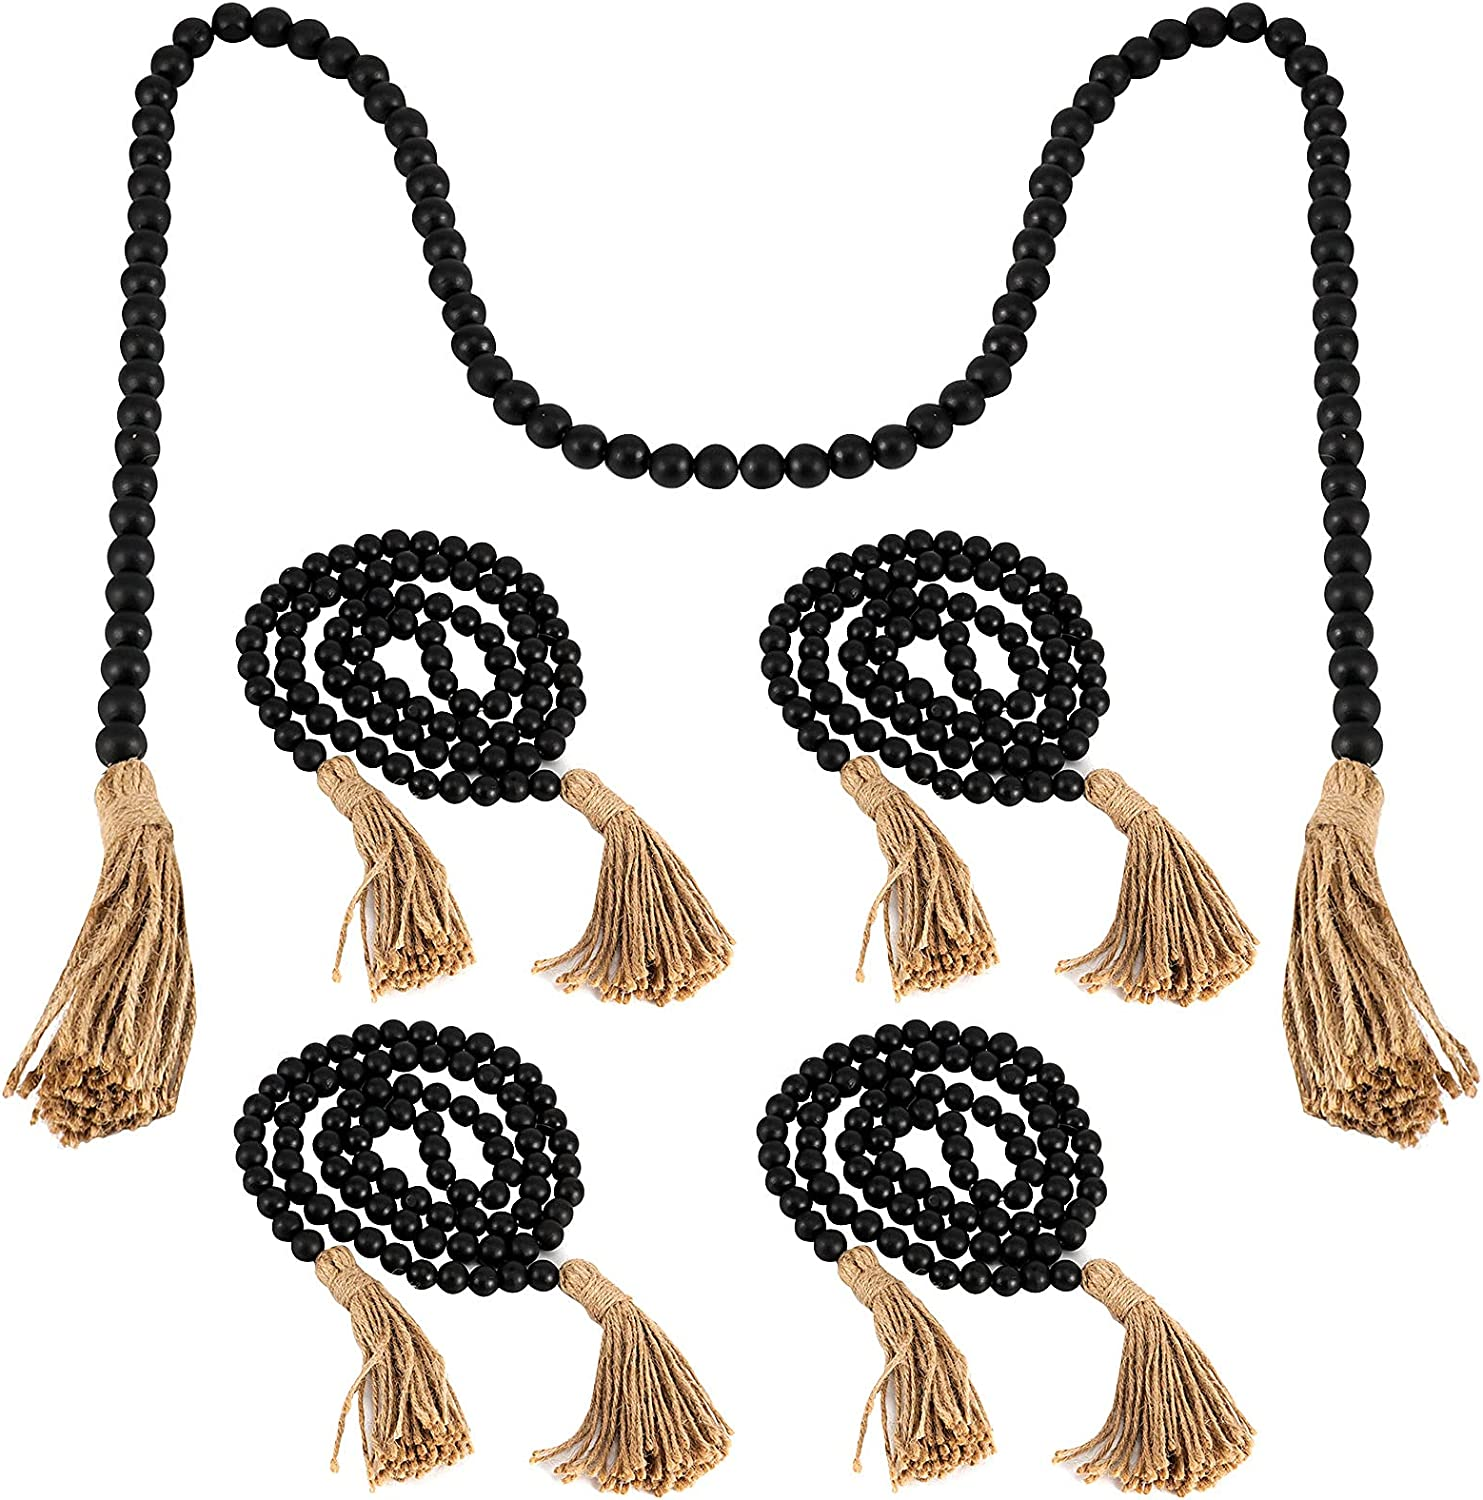 ZOENHOU 5 Pieces Each 57 Inch Tasse Bead Black Wood with Fees free Max 86% OFF Garland